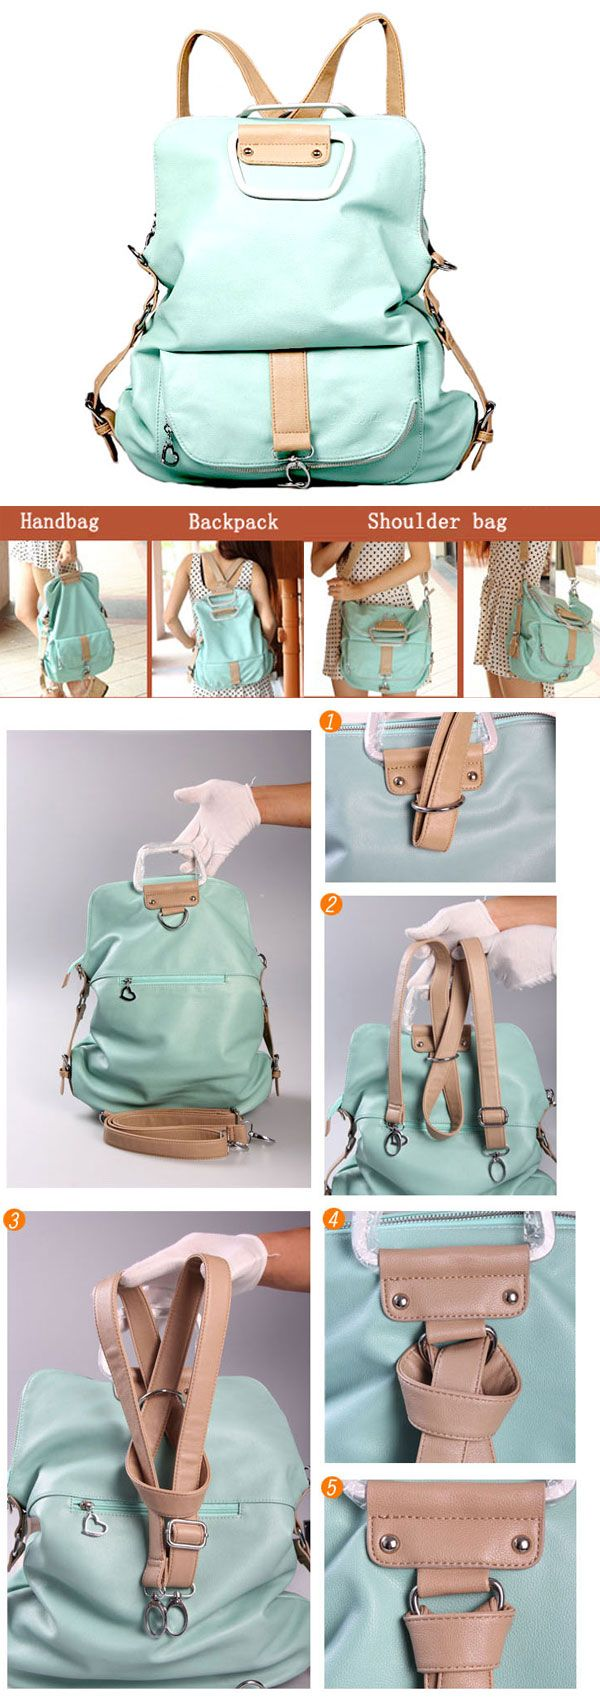 I am so happy to find the Unique Fresh Multifunction Backpack & Handbag & Shoulder Bag from ByGoods.com. I like it <3!Do you like it,too?